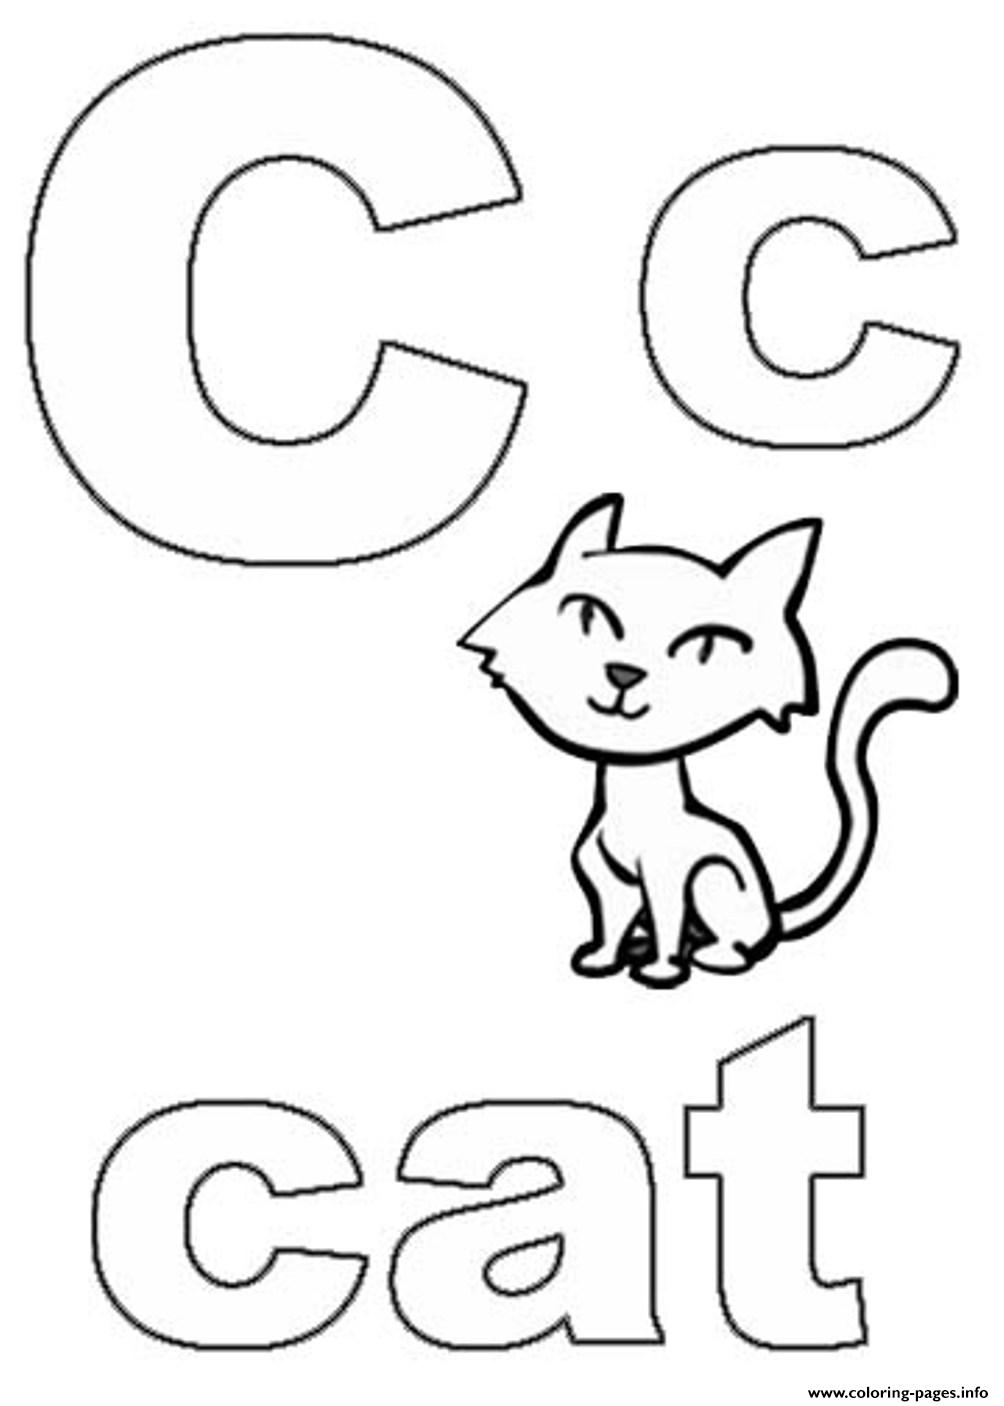 Printable S Alphabet C For Catab4b Coloring Pages Printable